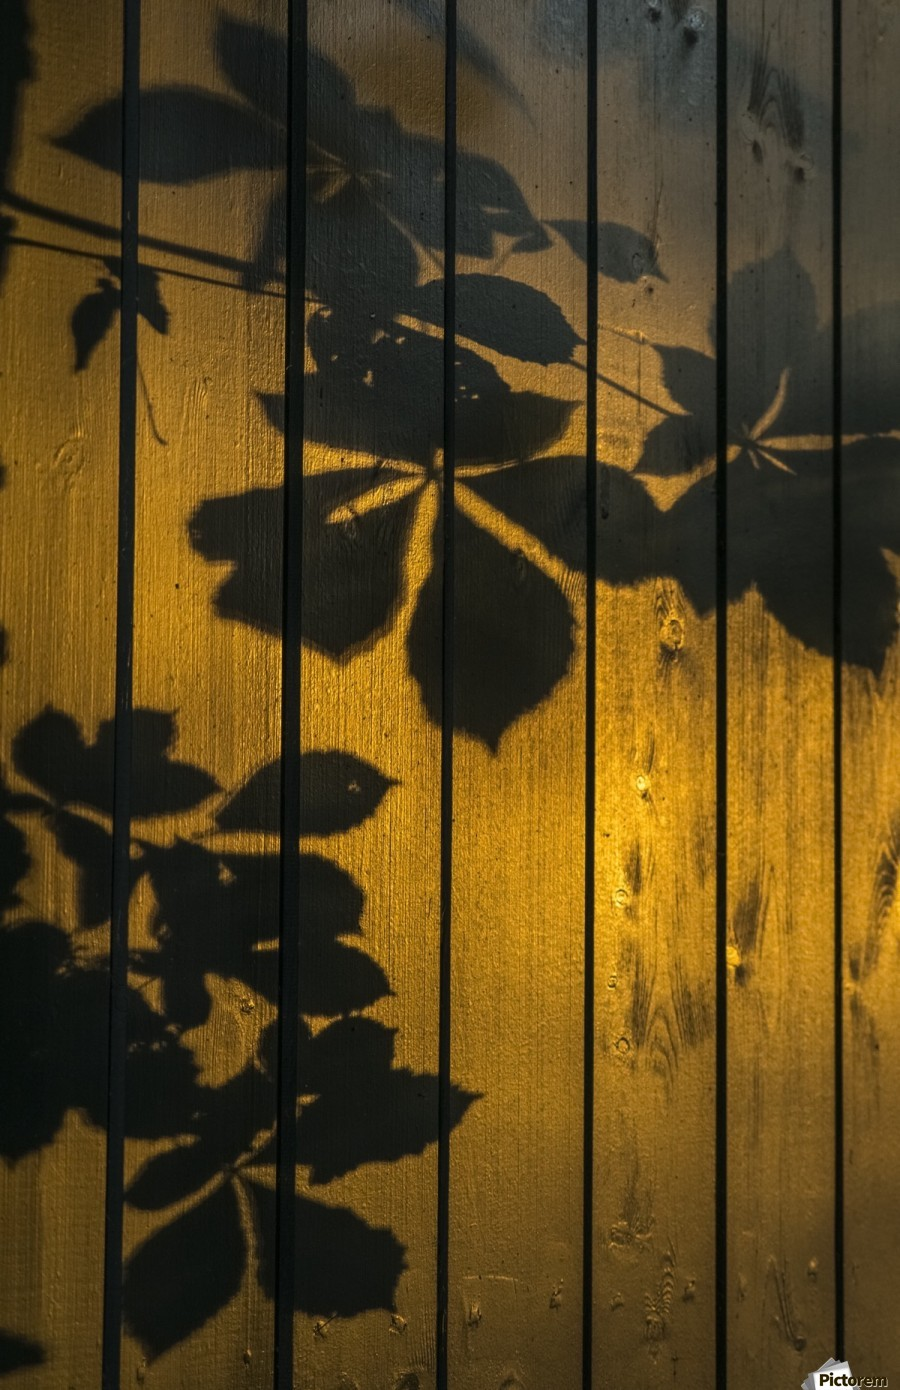 Shadows of tree branches and leaves cast on a wooden fence; Gateshead, Tyne and Wear, England  Print